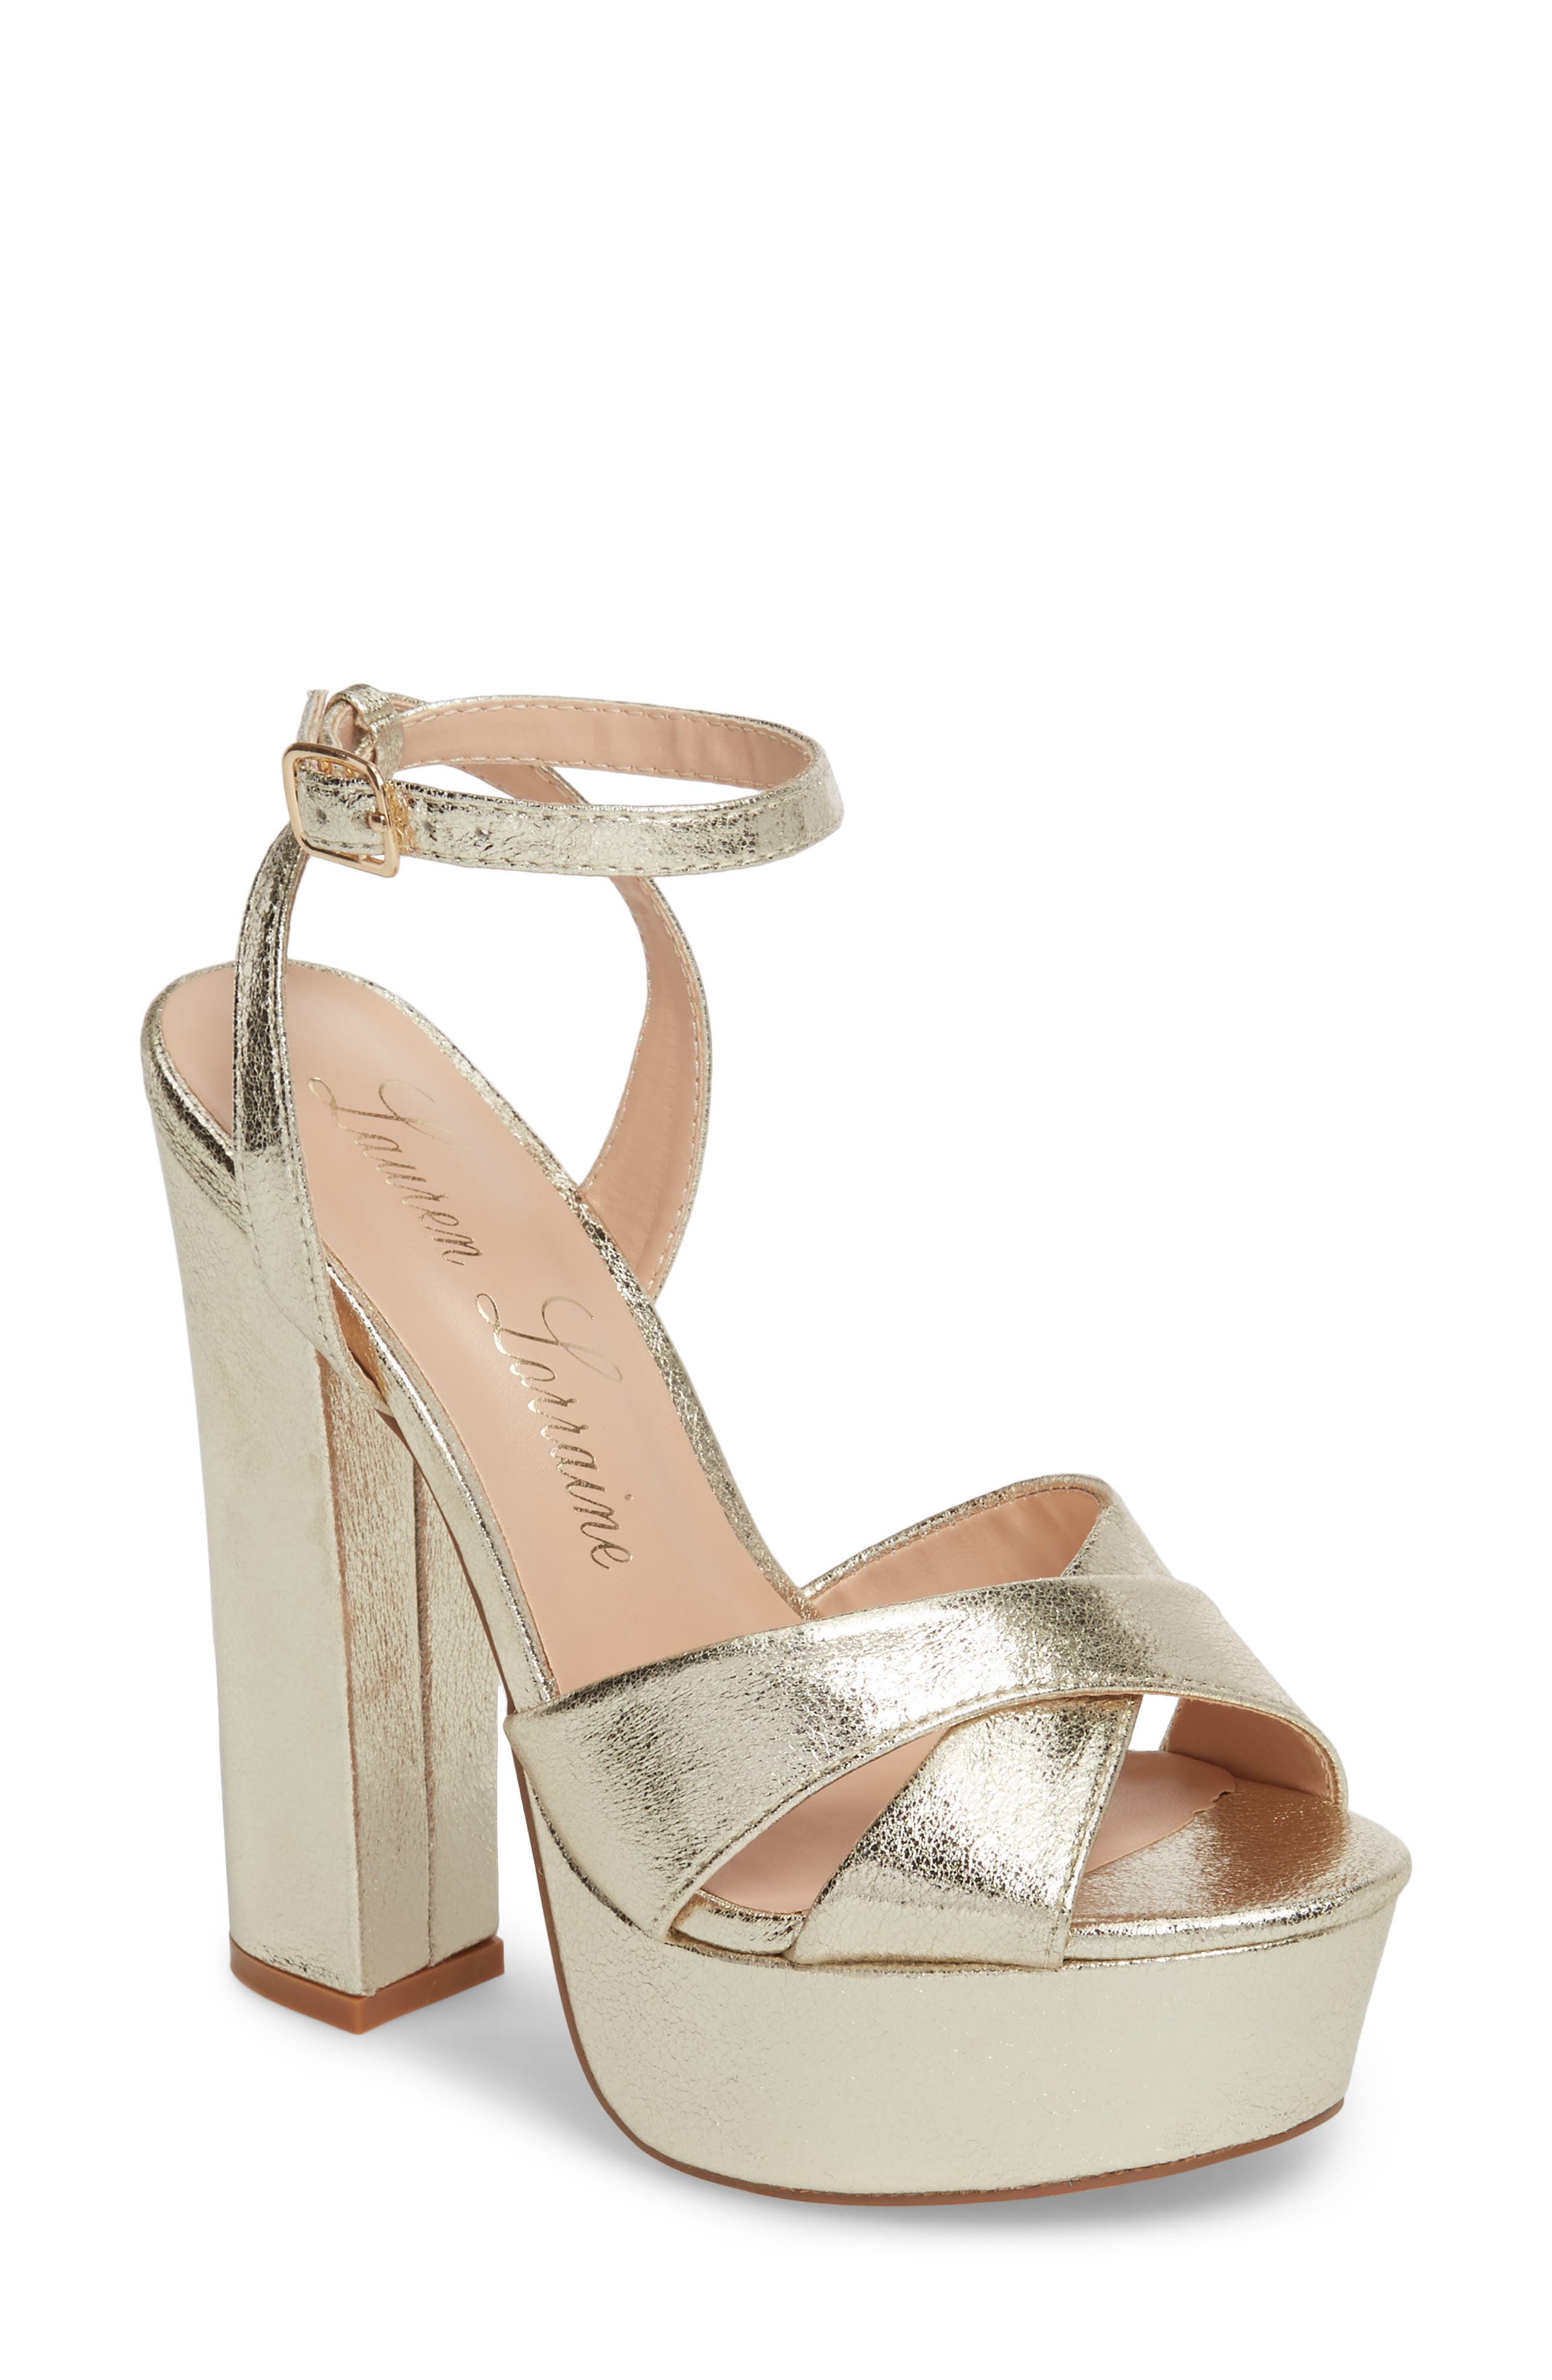 Alternate Image 1 Selected - Lauren Lorraine Carla Platform Sandal (Women)